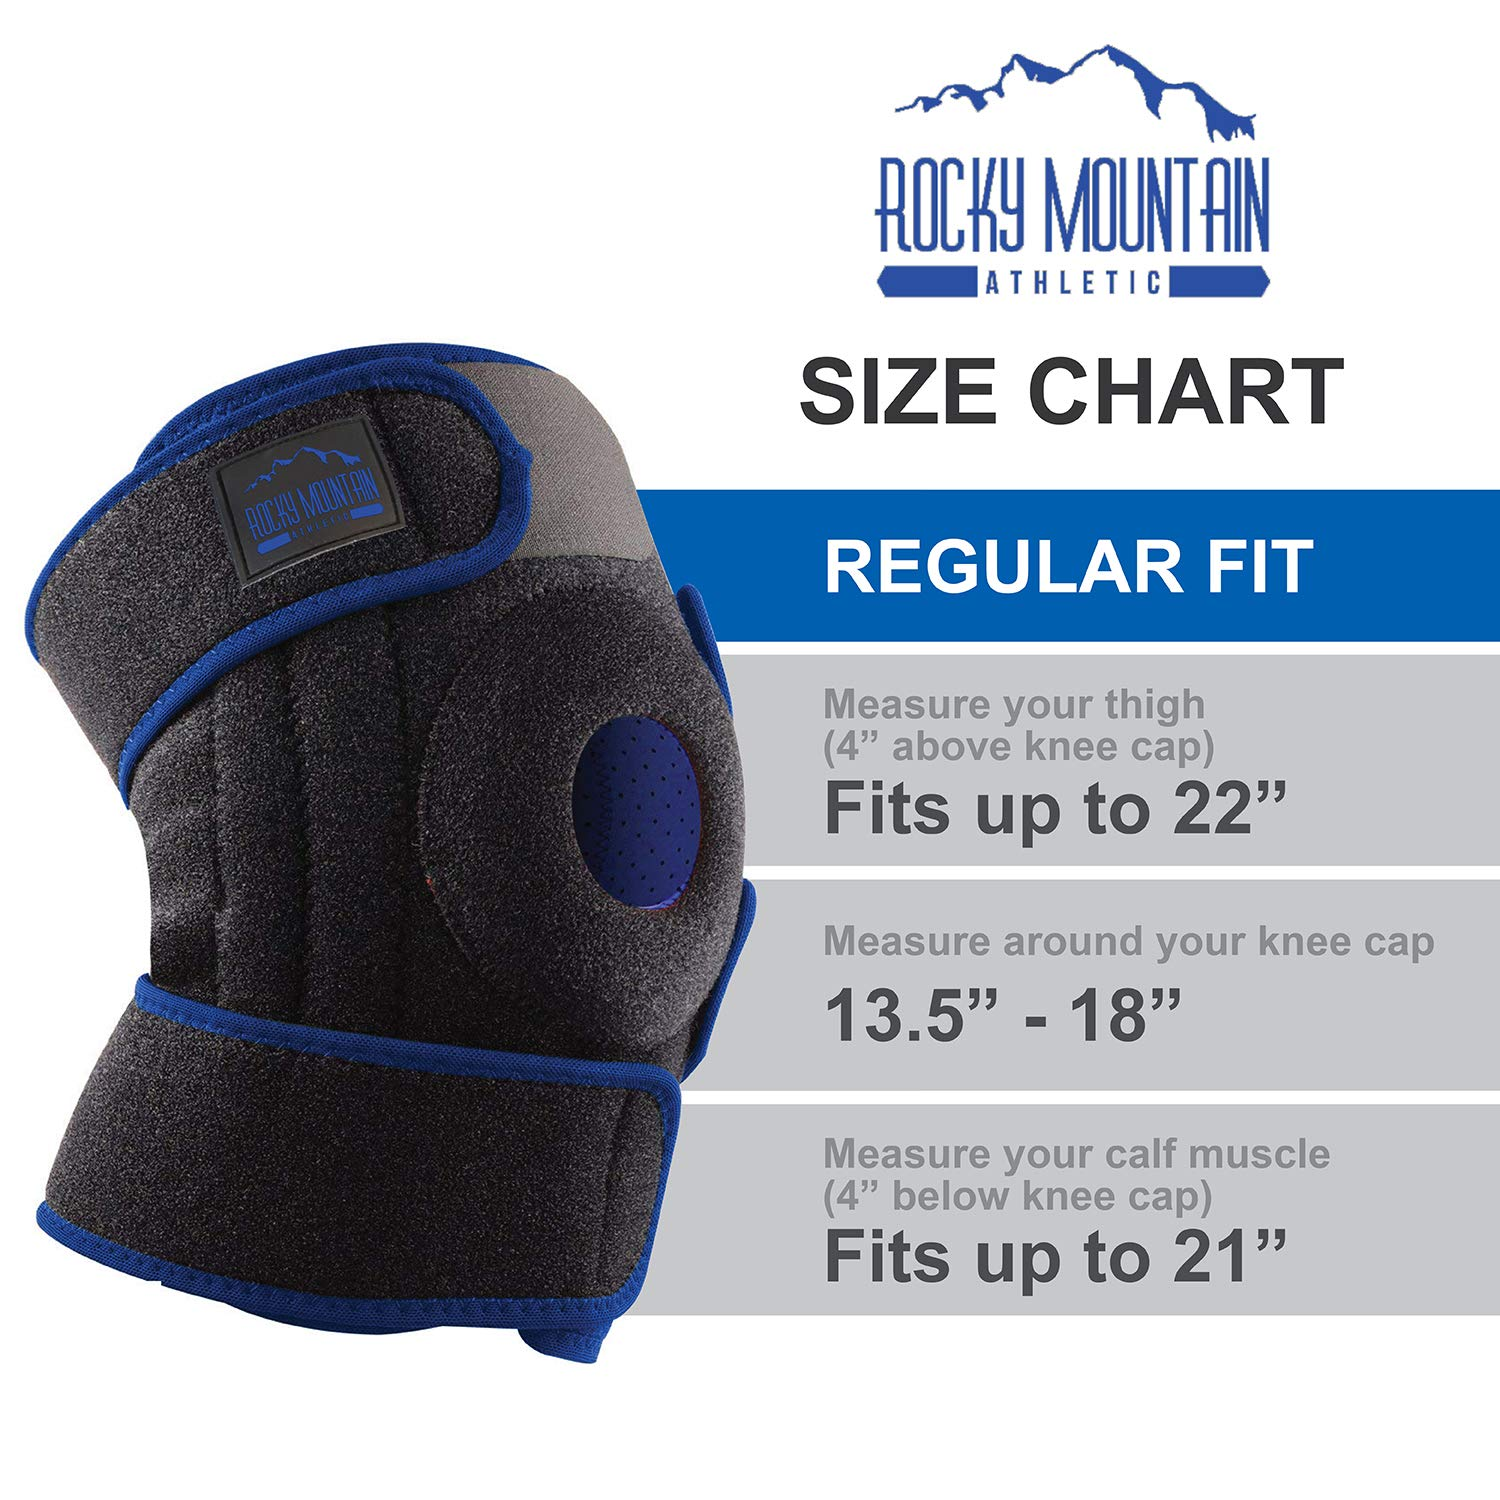 Knee Brace Support Sleeve Therapy Wrap Adjustable Patella Tendon Stabilizer for Meniscus Tear, Bursitis, Runners, Arthritis, Jumpers, ACL, MCL, Joint Injuries, Ligament Sprains, Swelling, & All Sports by Rocky Mountain Athletic (Image #4)